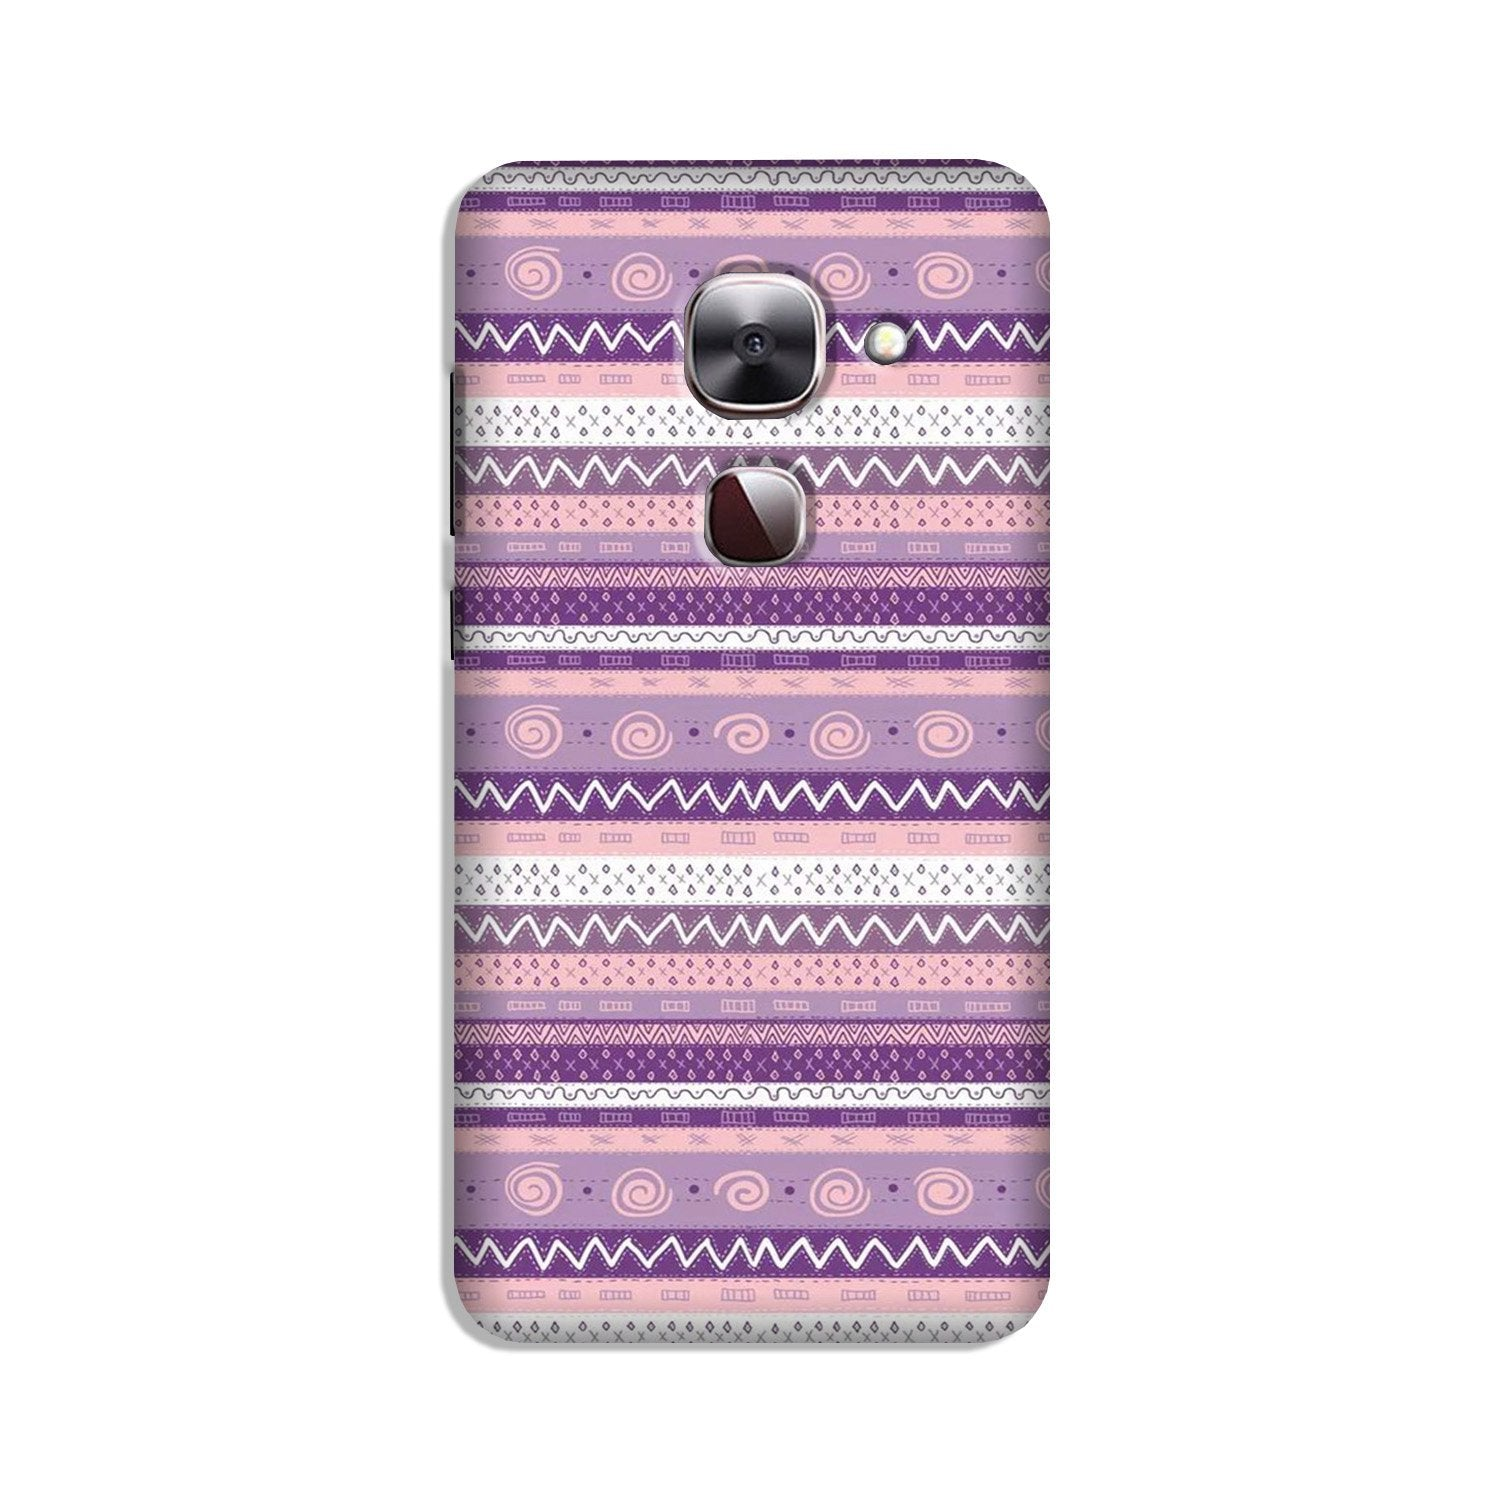 Zigzag line pattern3 Case for LeEco le 2s